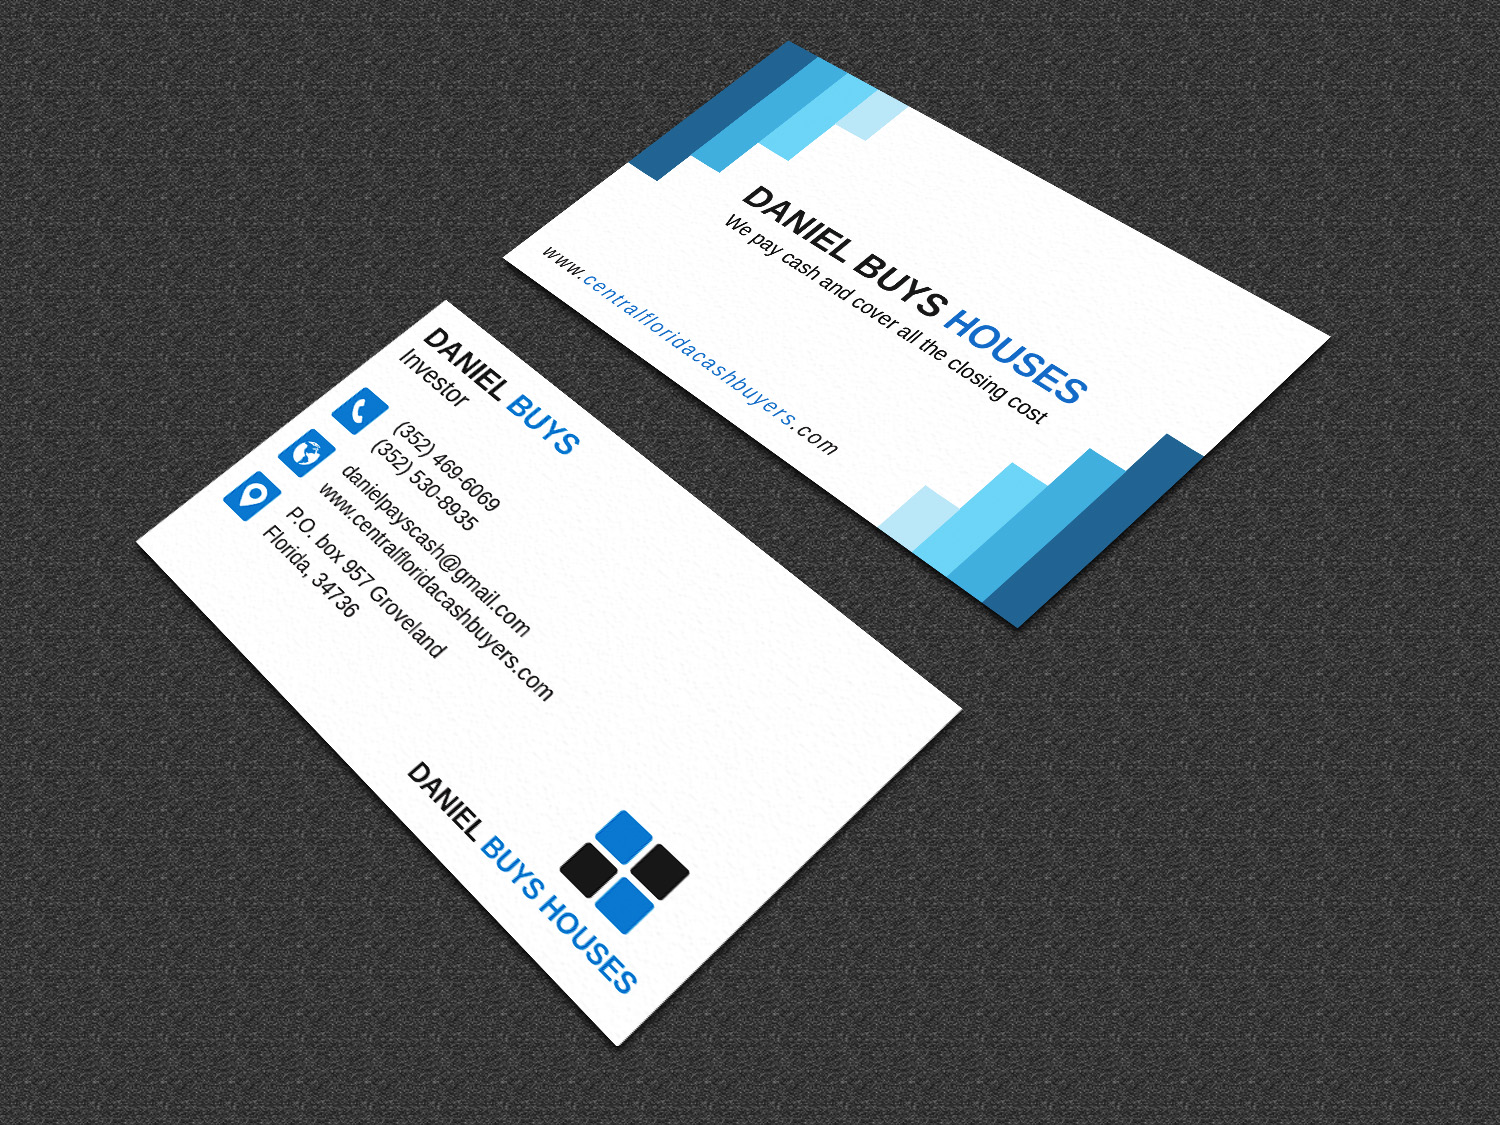 Design Professional Business Card within 24 Hours for $5 - SEOClerks